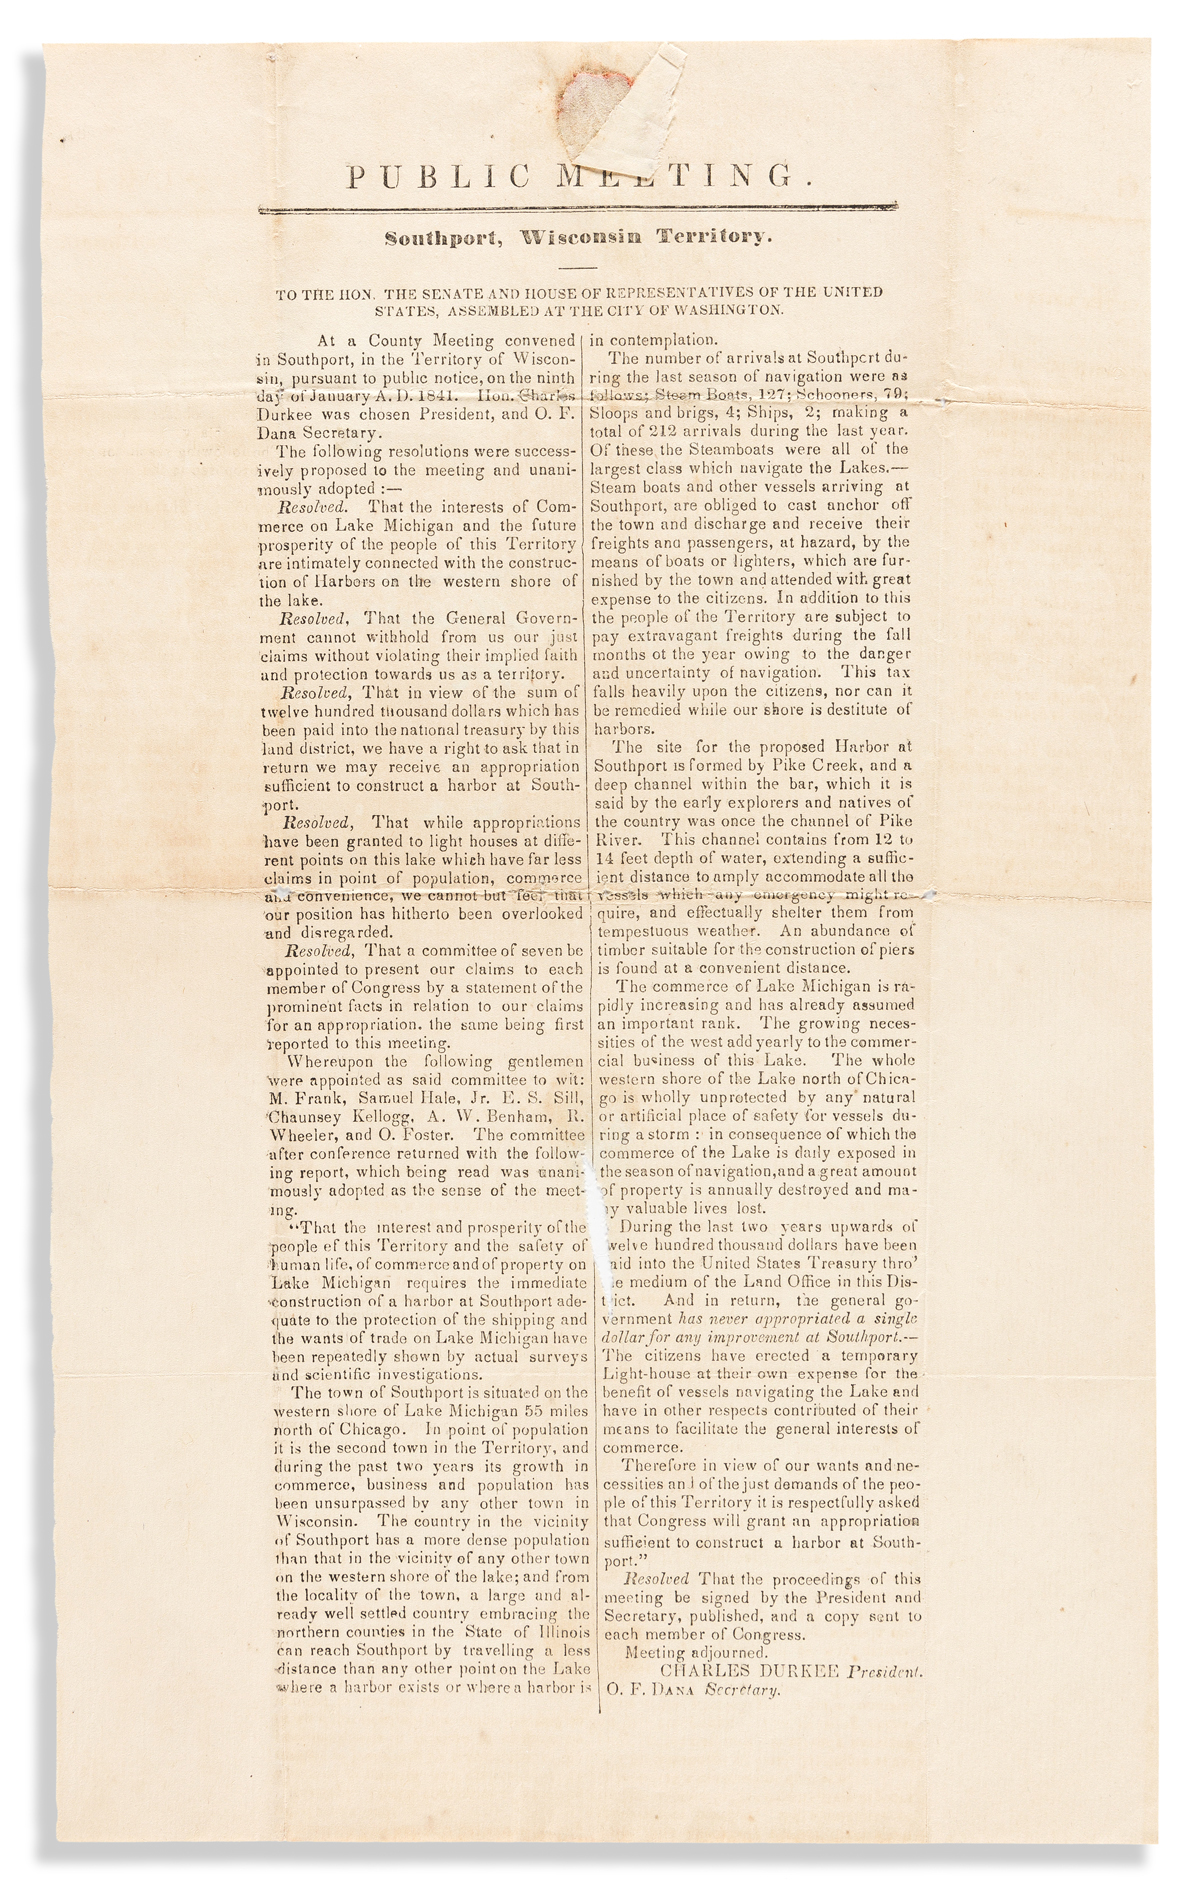 (WISCONSIN.) Broadside petition to Congress to construct a harbor at Southport (Kenosha).